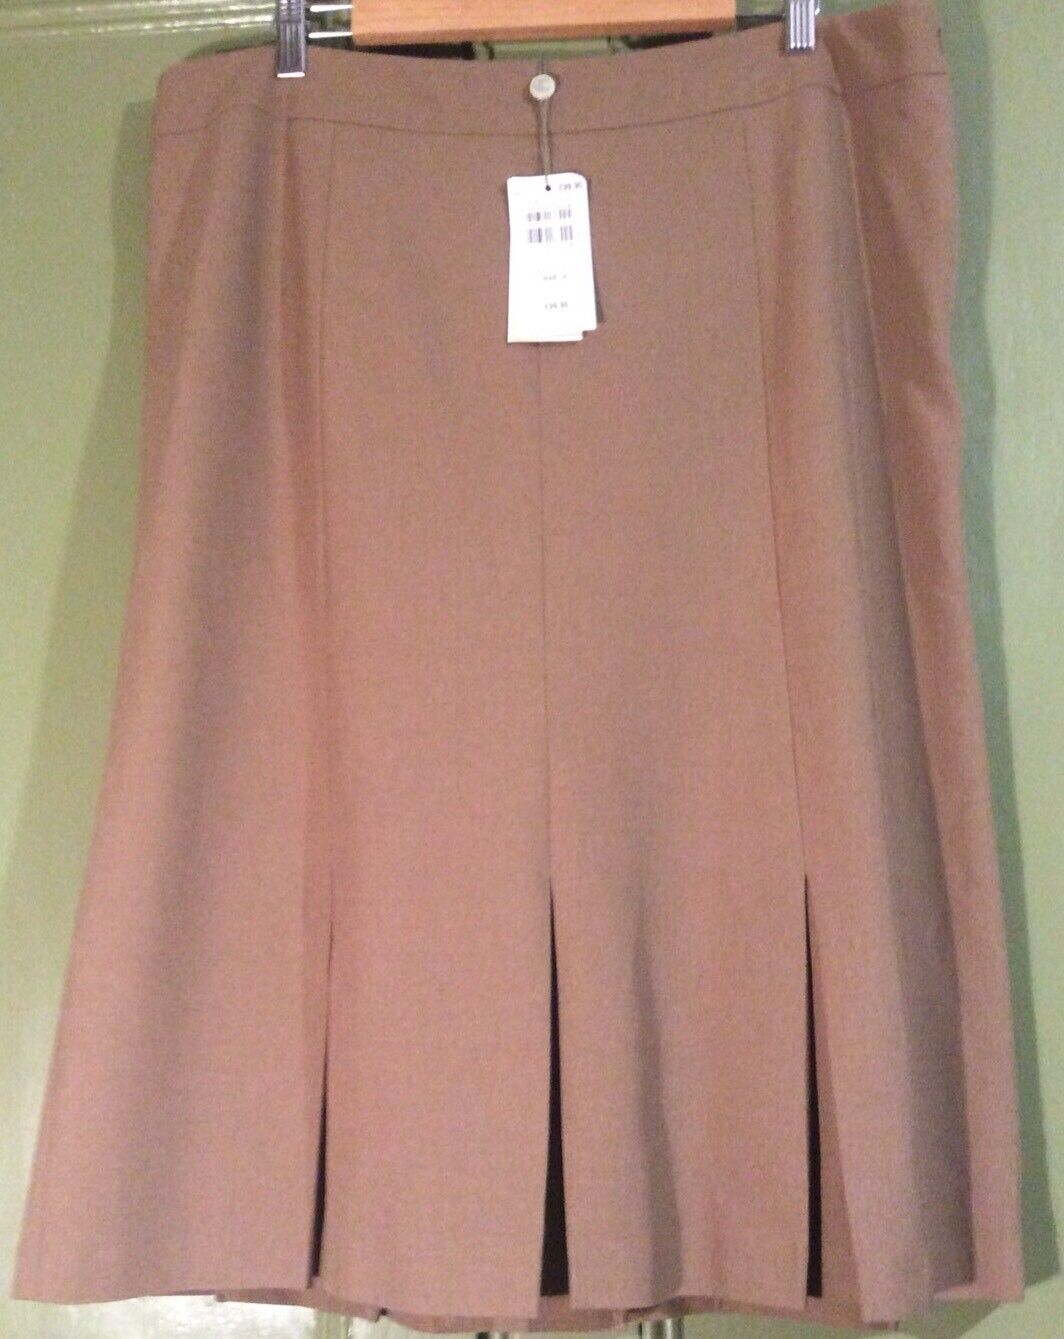 Country Casuals BNWT Dark Sand Beige Classic Skirt Pleated Lined